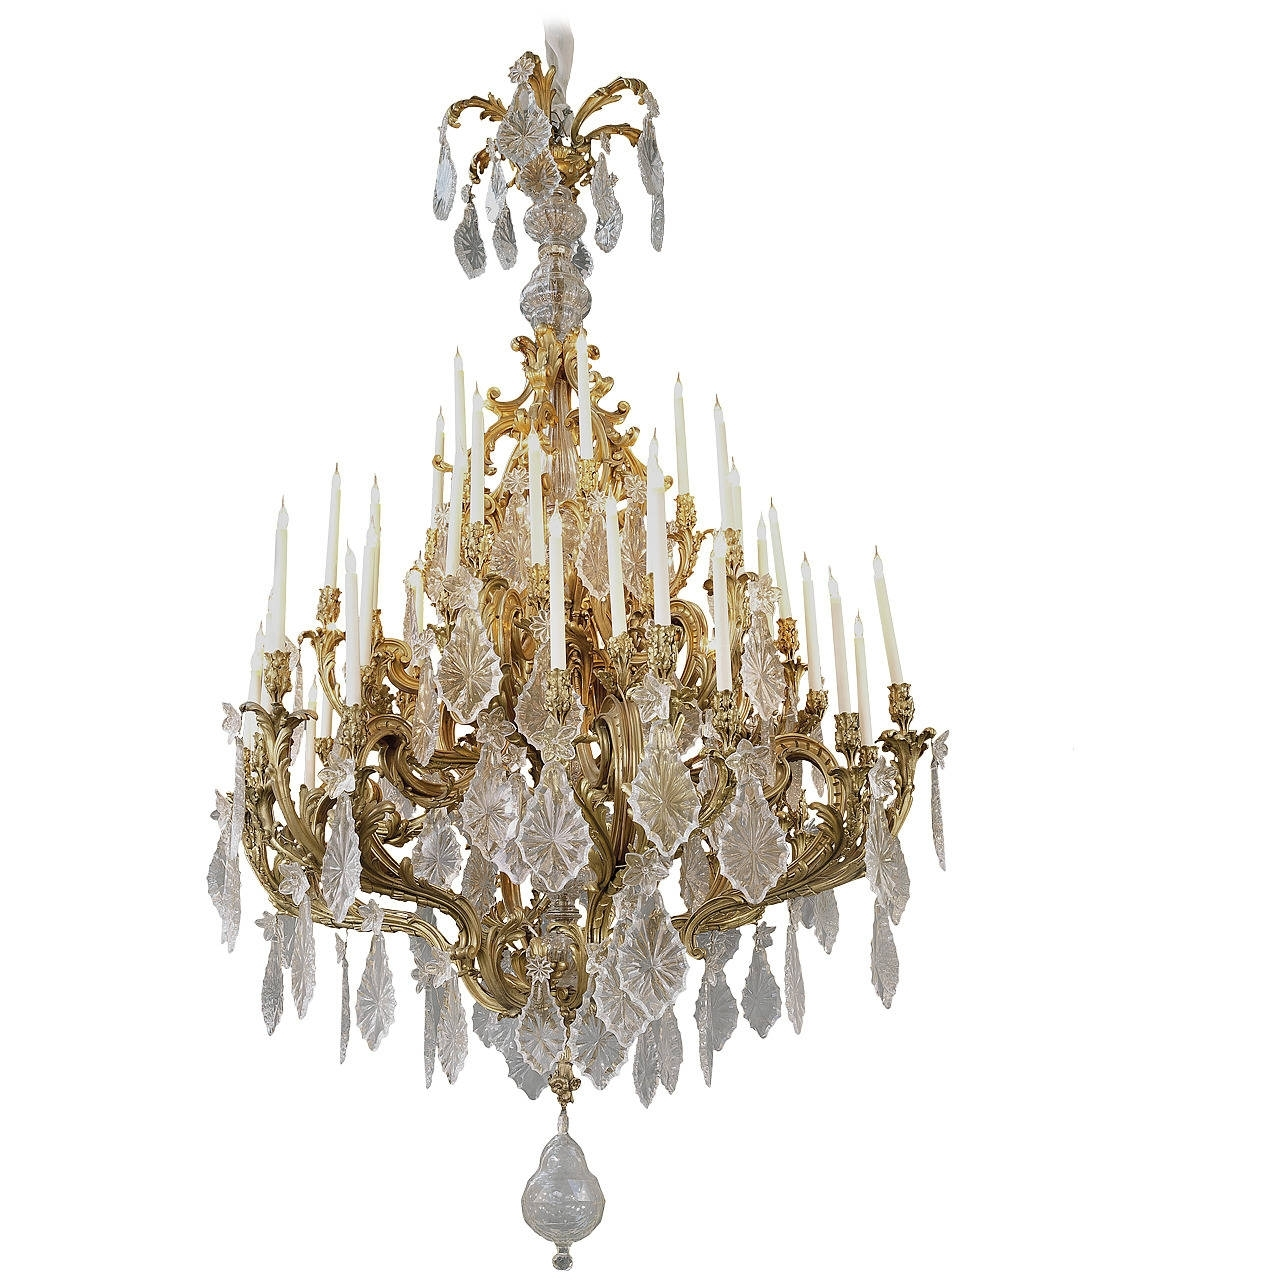 Chandelier Lamps, Big Pertaining To Well Known Expensive Crystal Chandeliers (View 5 of 20)